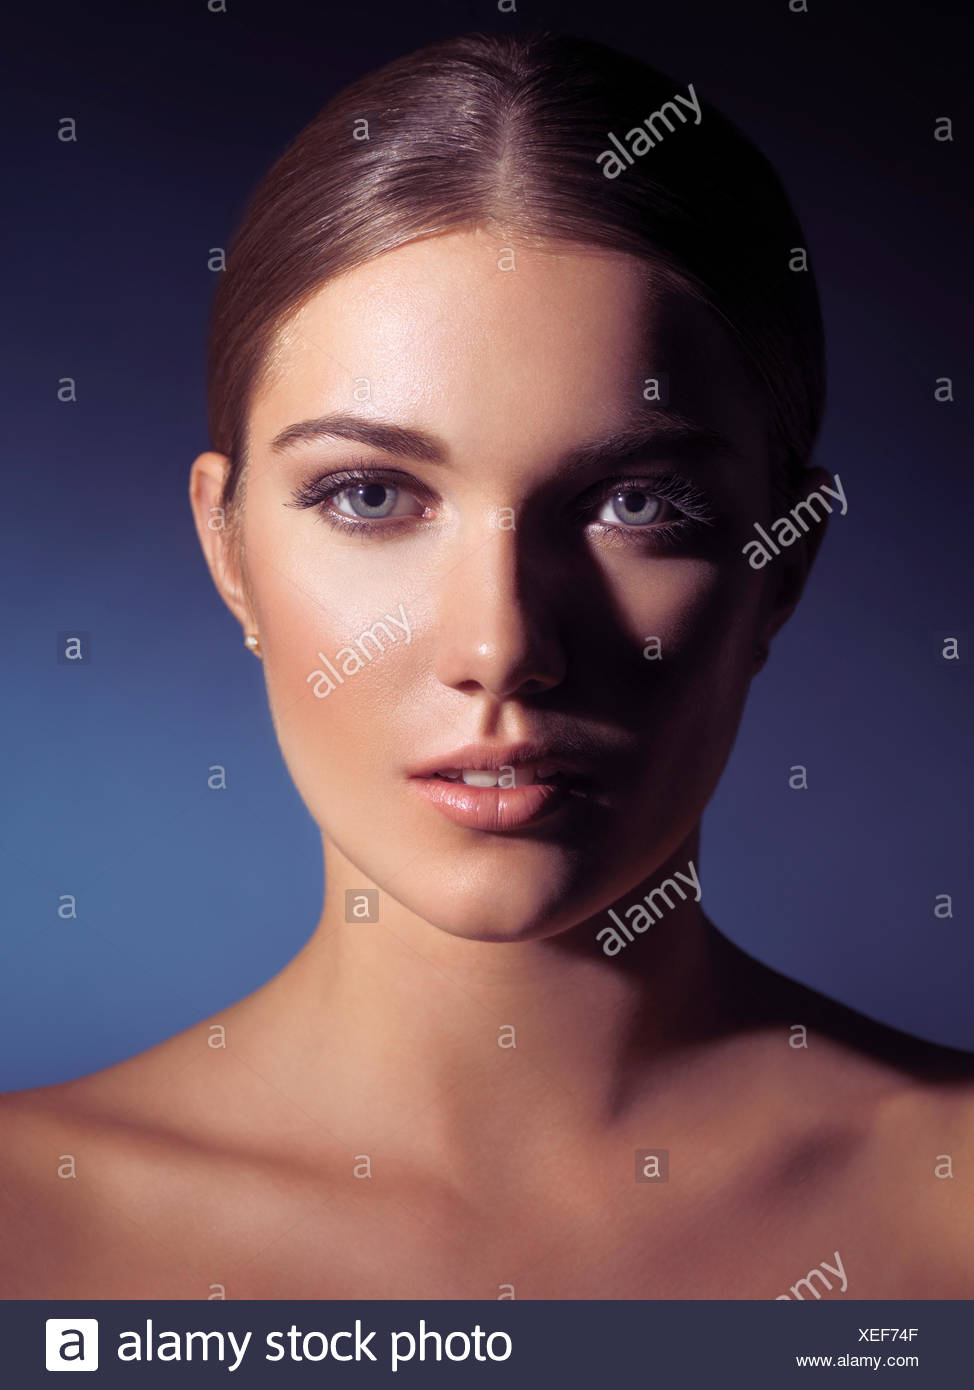 Woman with natural makeup and spotless skin Stock Photo